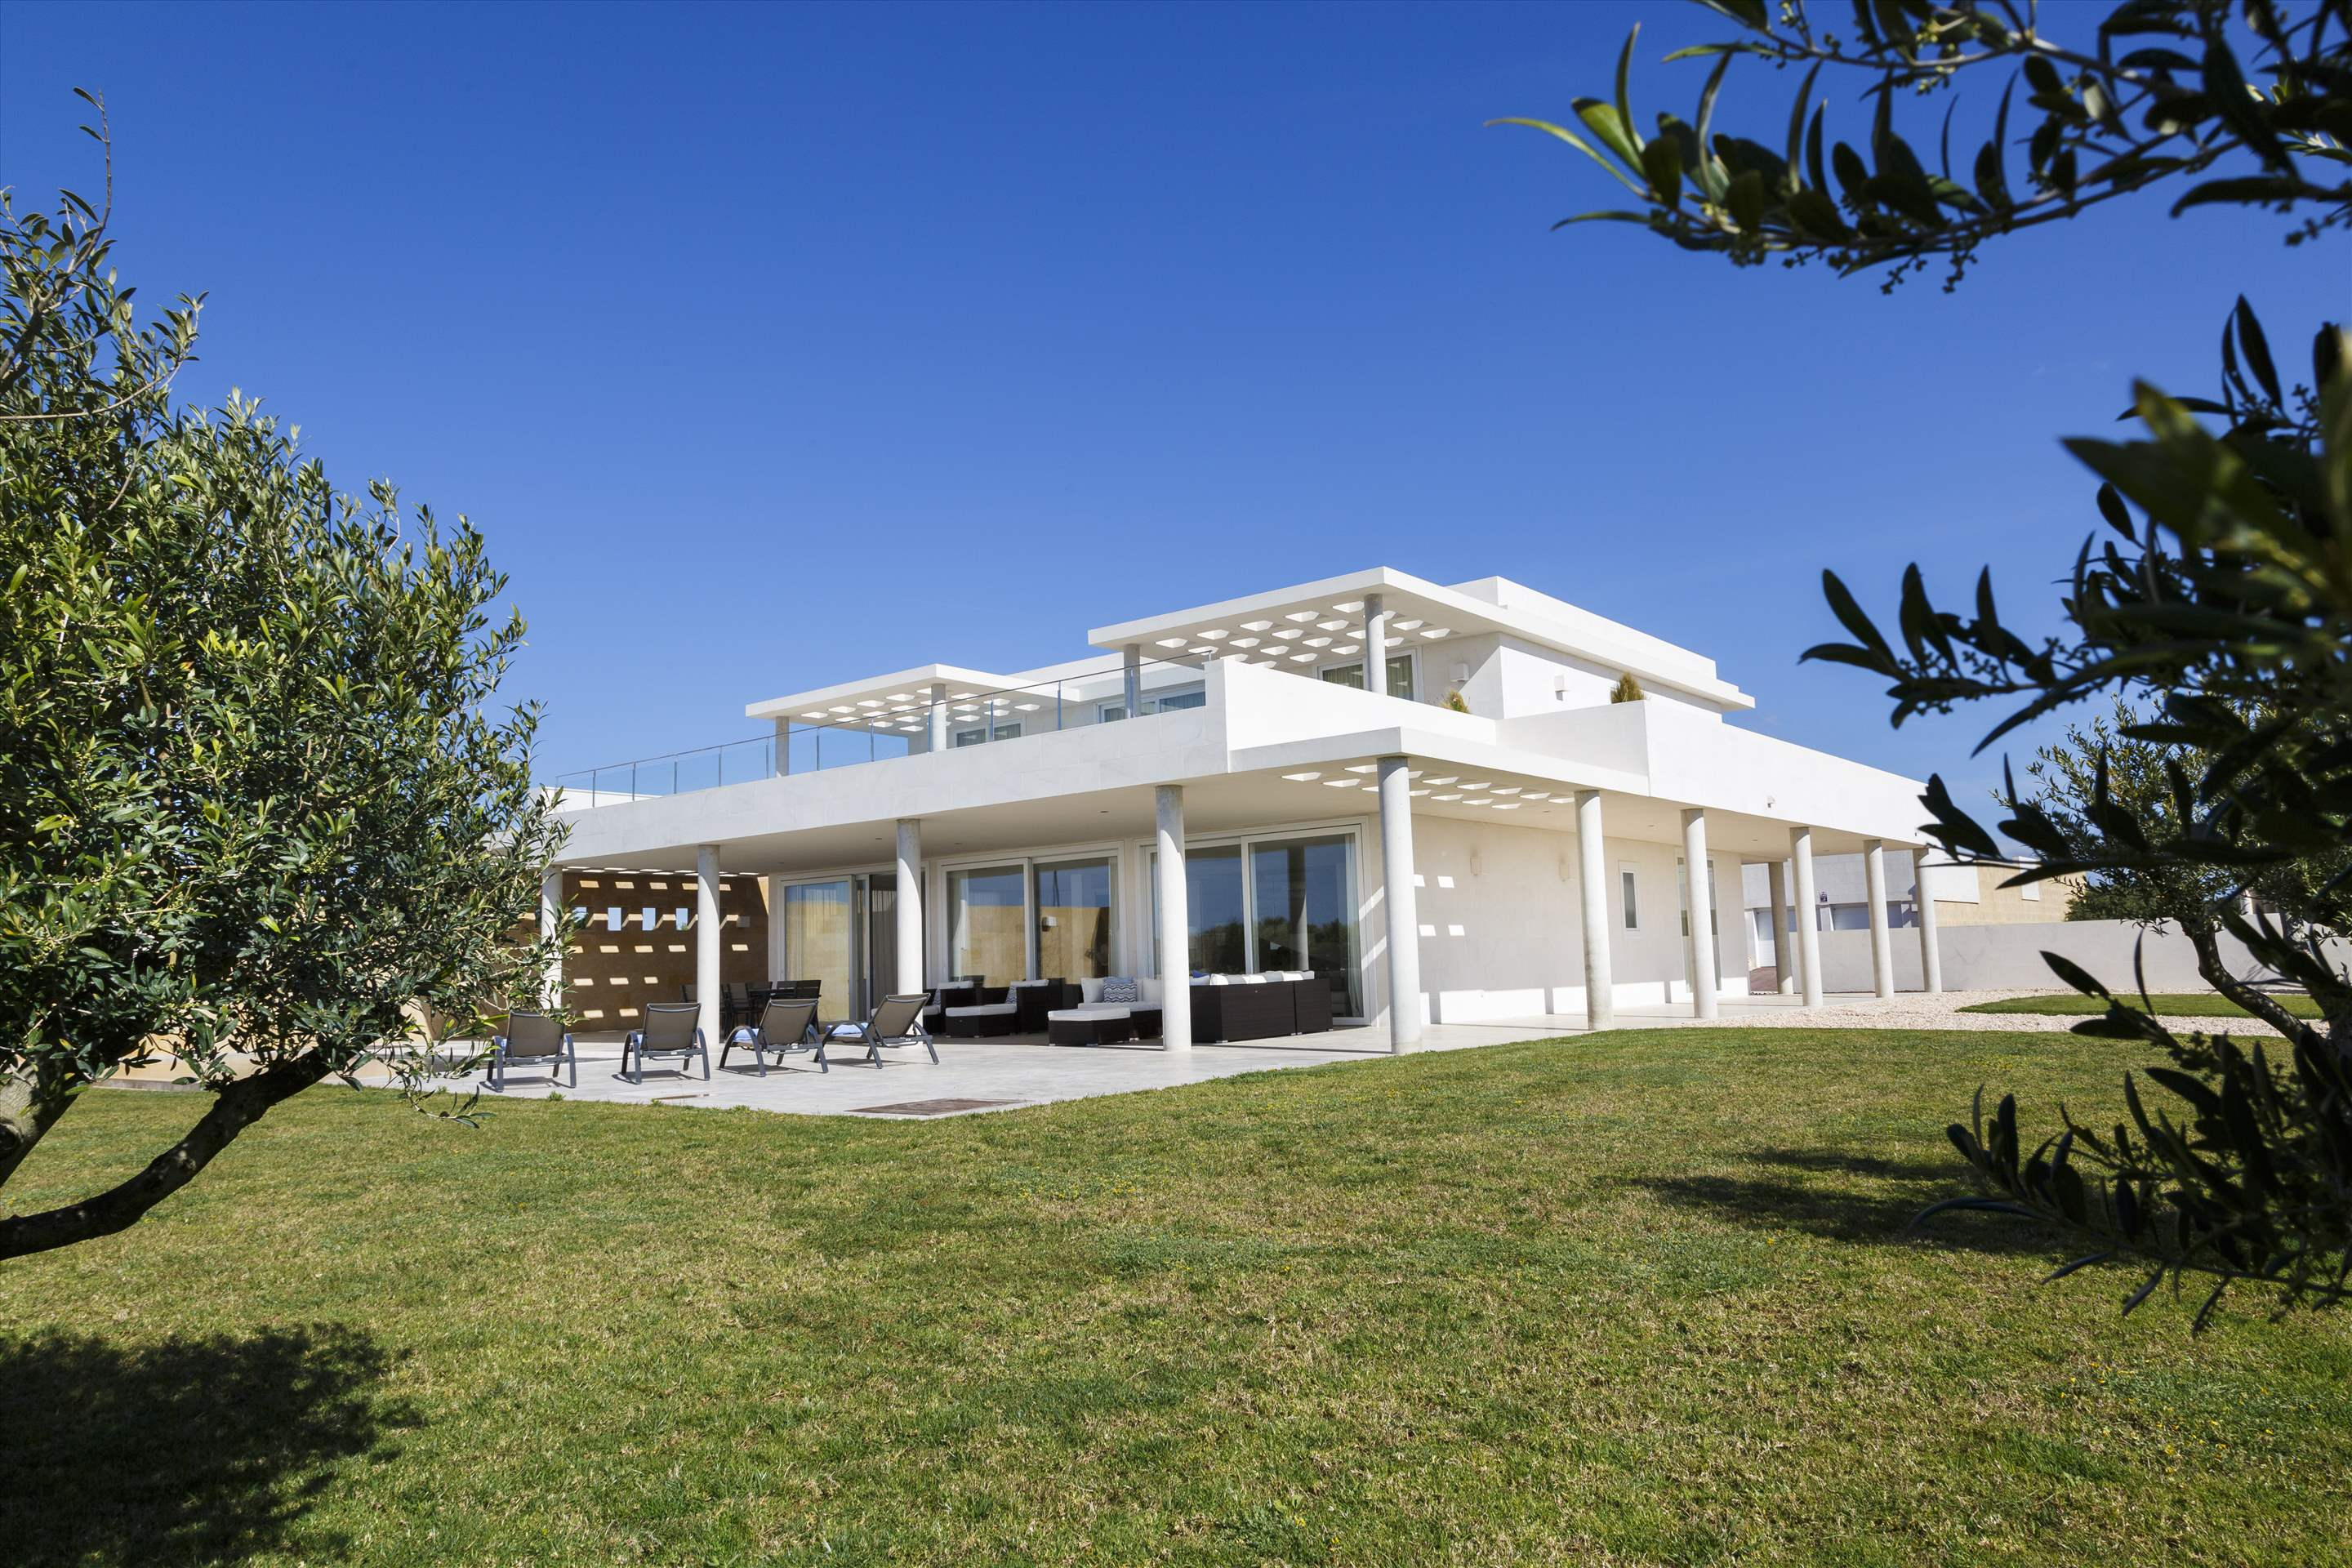 Binibeca Hills , 5 bedroom, 5 bedroom villa in Mahon, San Luis & South East, Menorca Photo #1